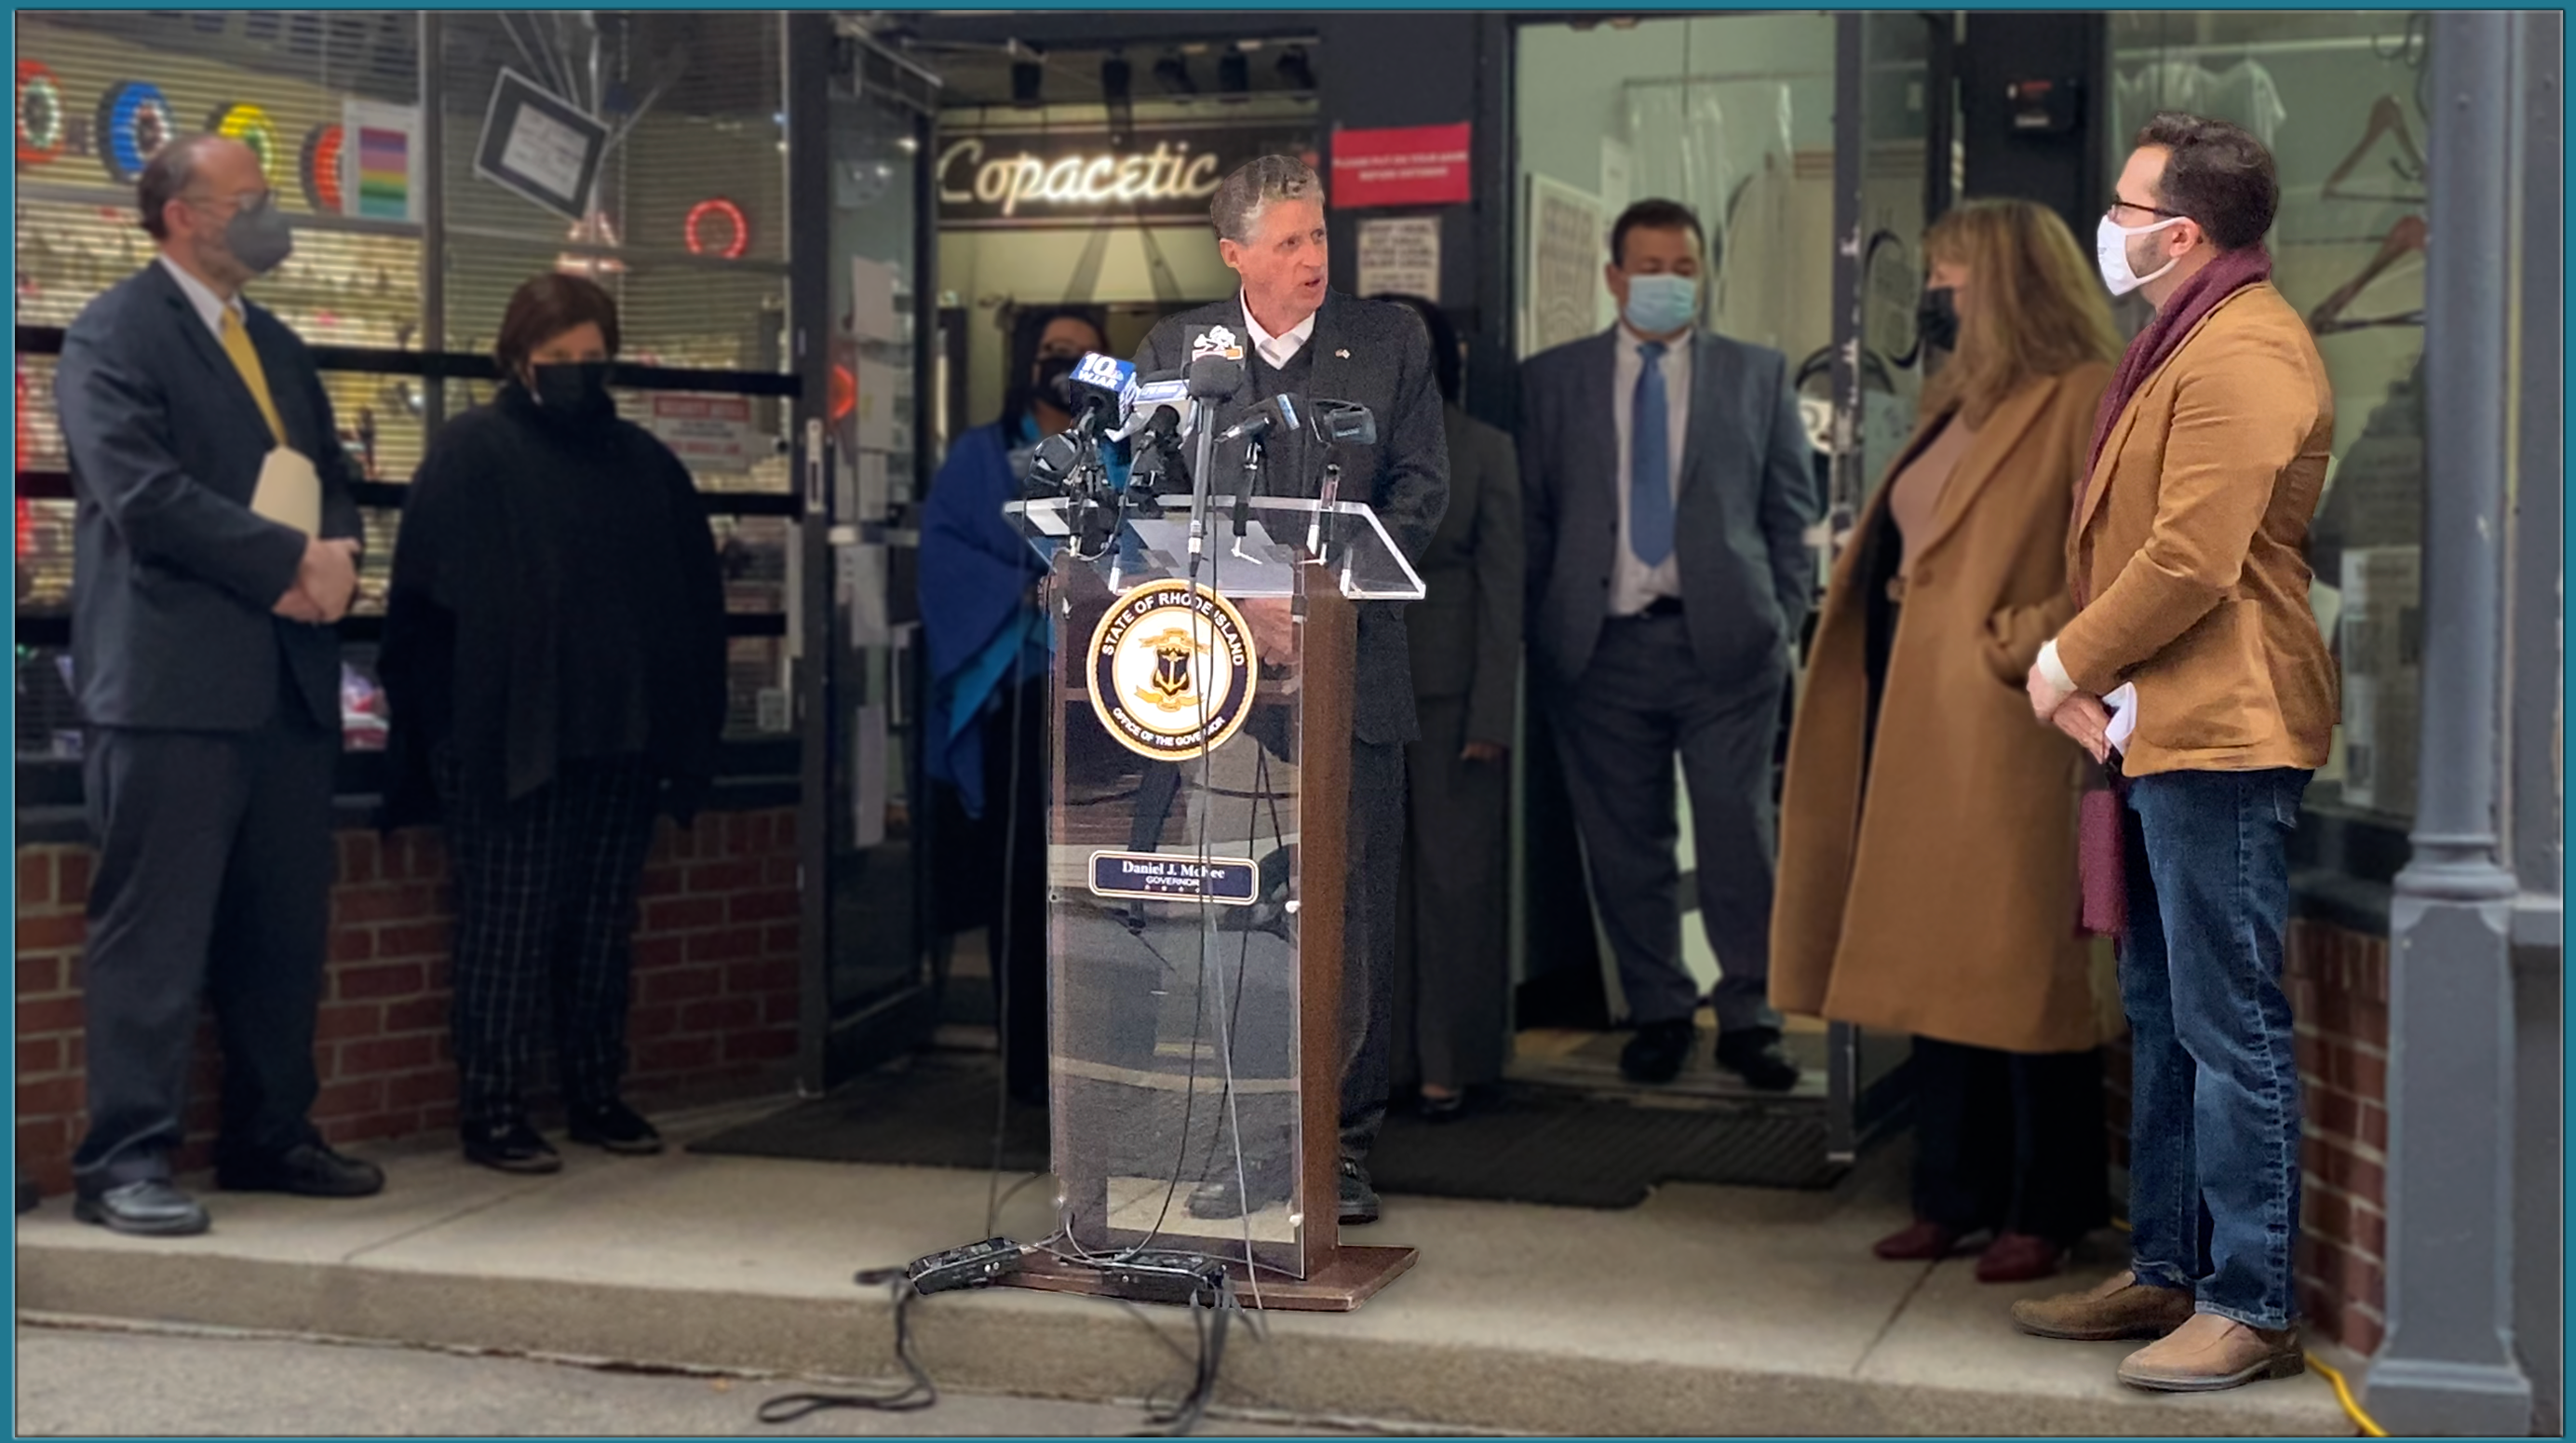 Governor Dan McKee addresses the crowd on April 12, 2021 and announces the Rhode Island Small Business Relief Grant